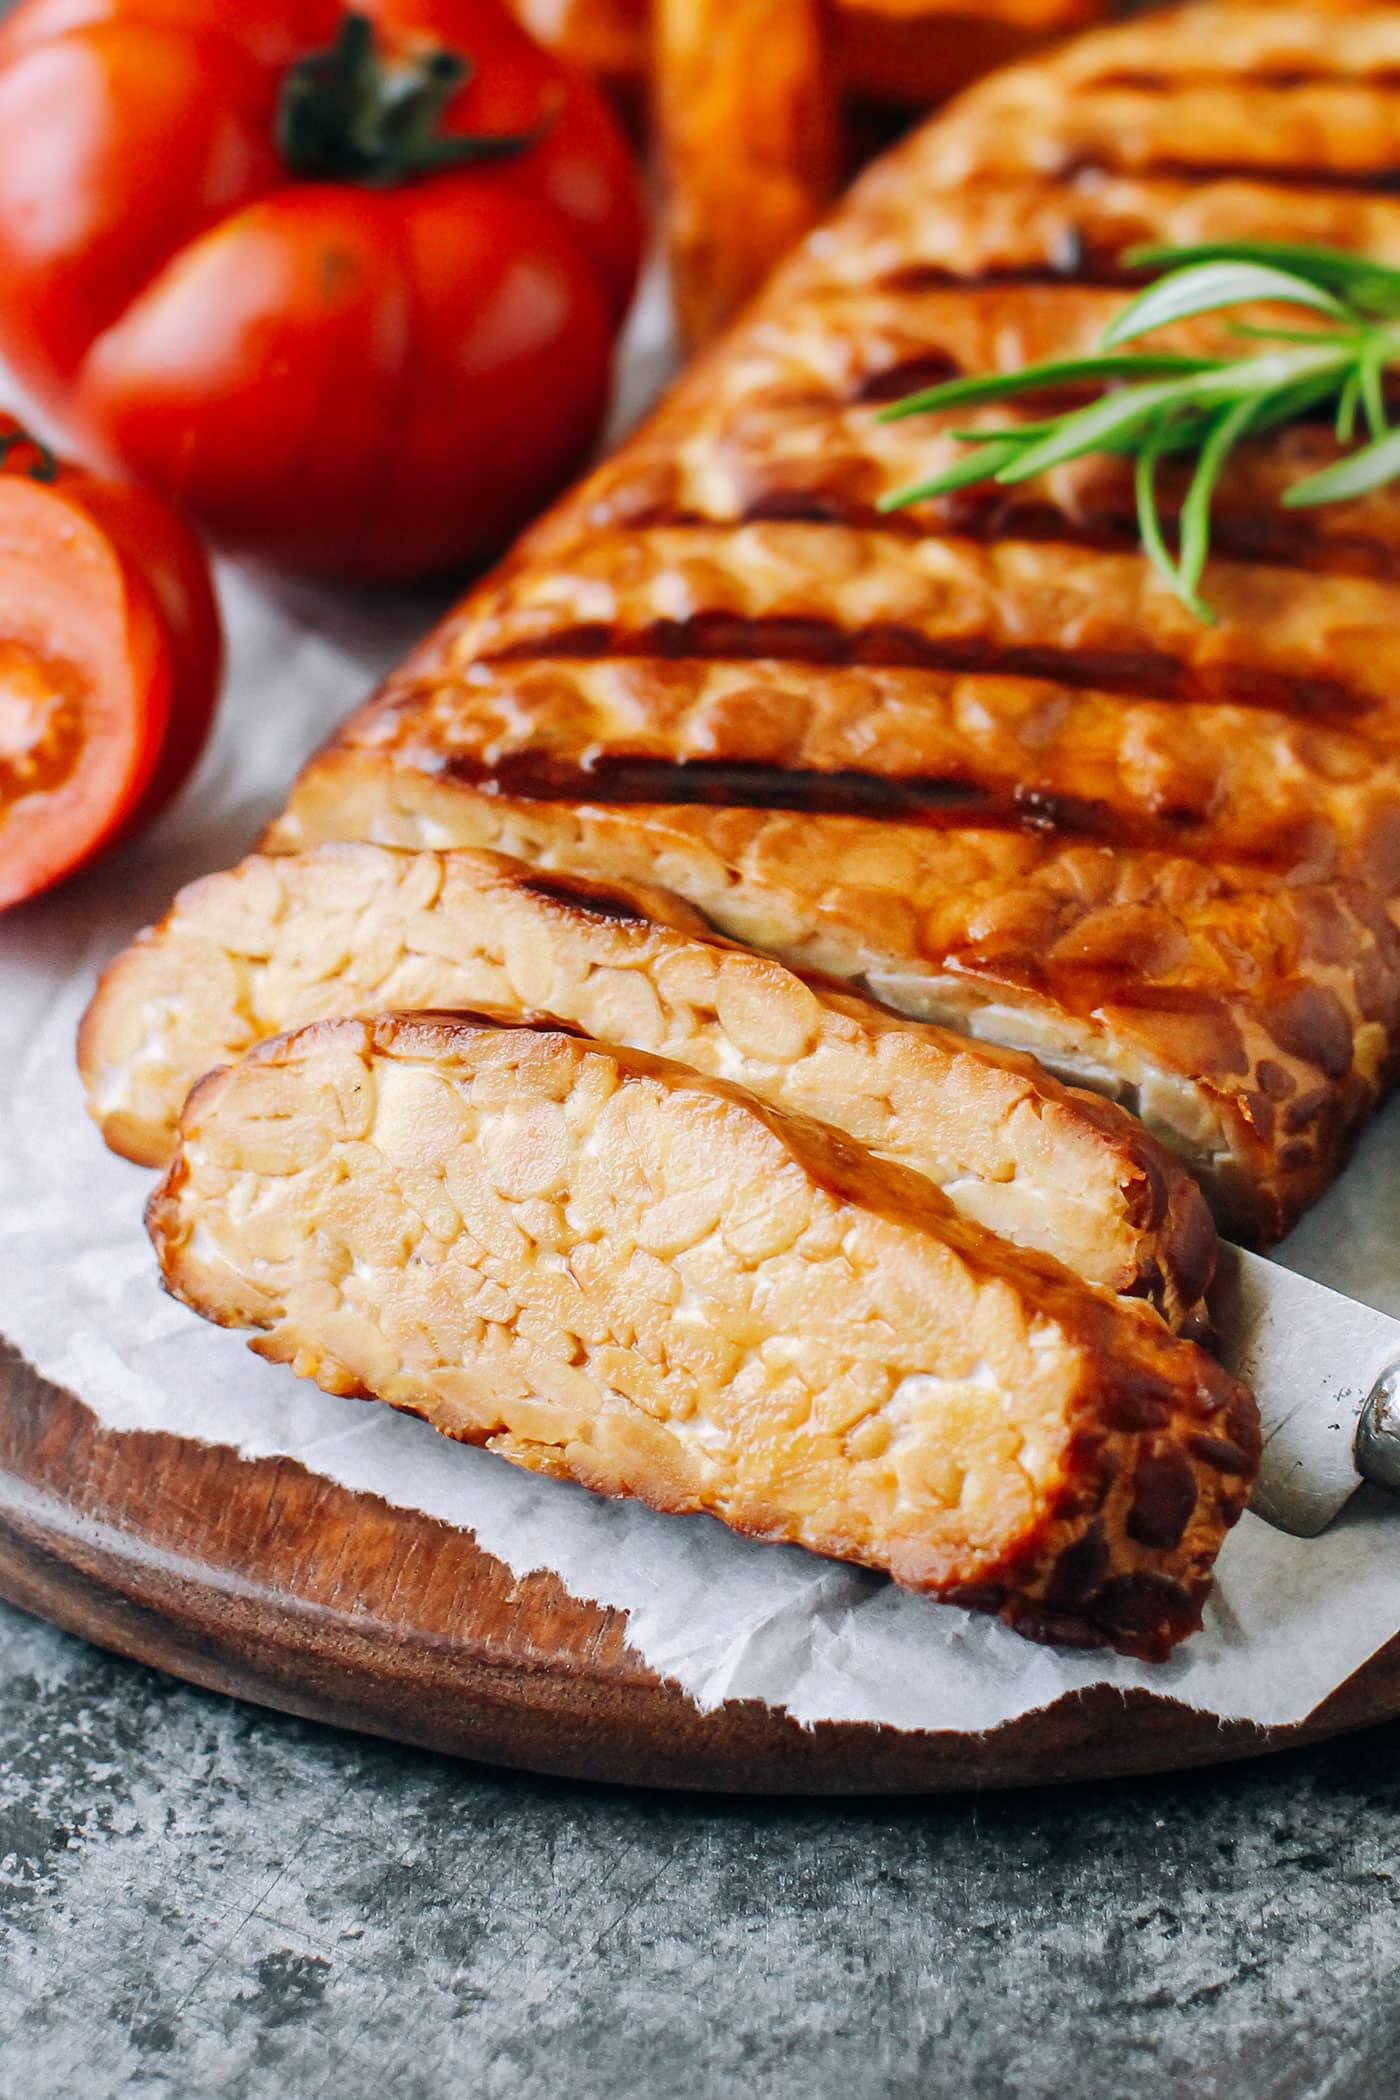 Smoked & Grilled Tempeh (Tempeh Bacon!)